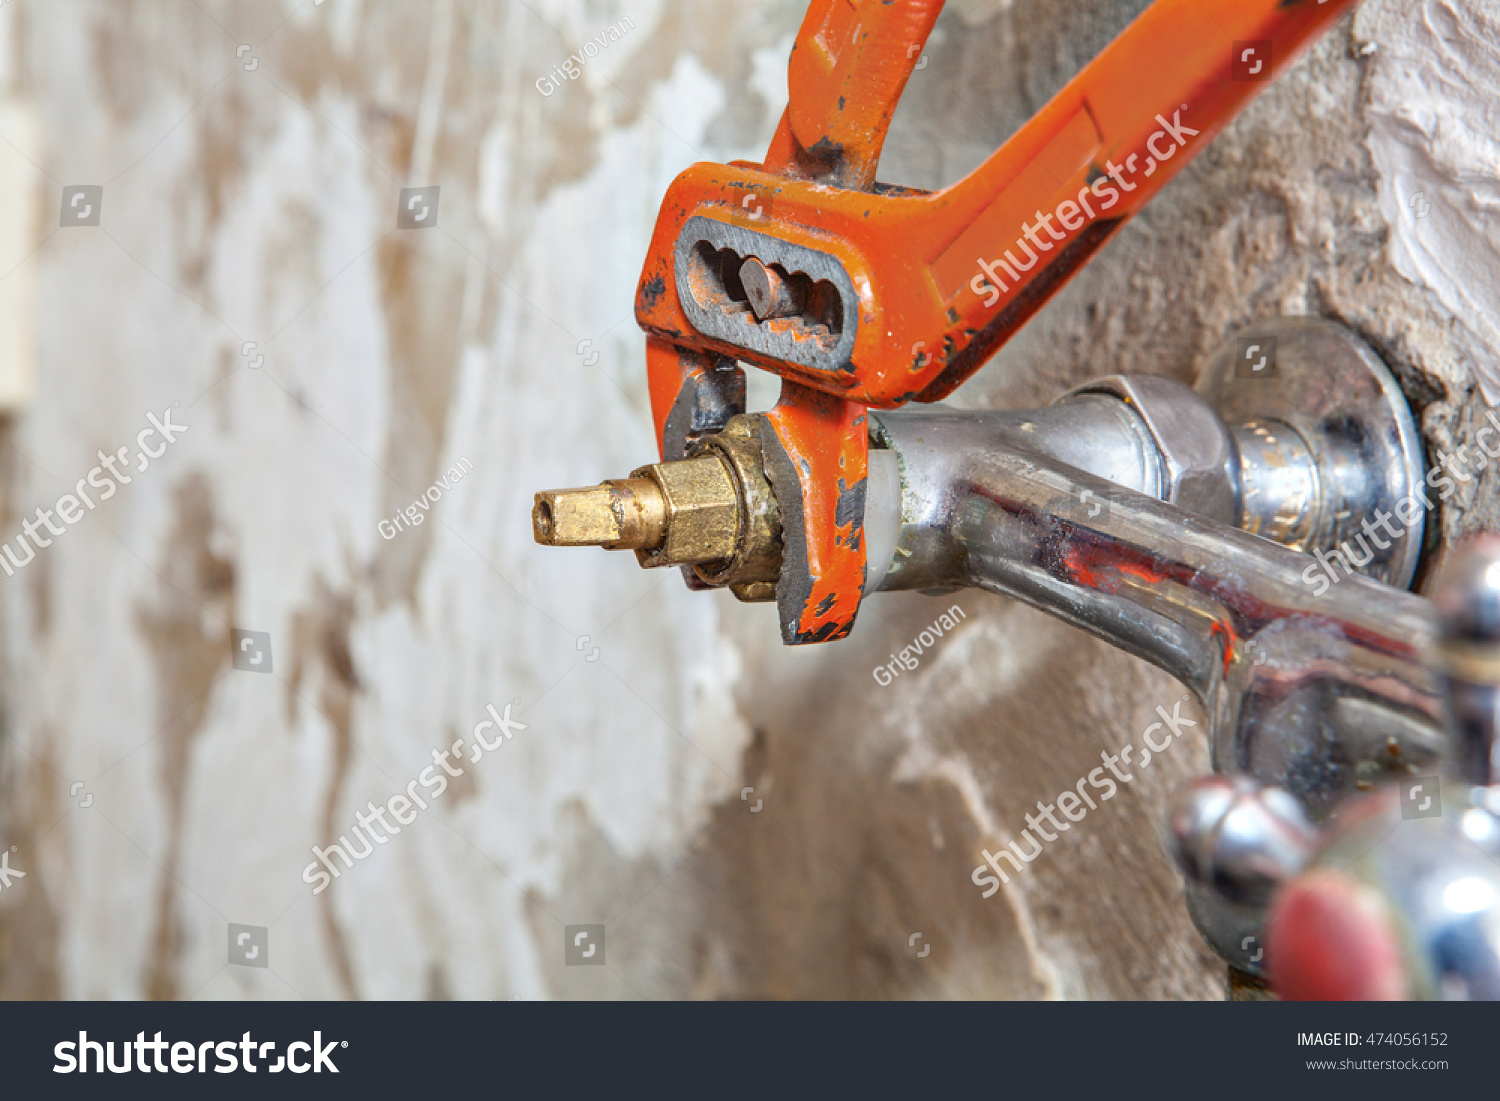 stock photo two handle kitchen faucet repair remove water tap valve replacing worn valve seat using red 474056152